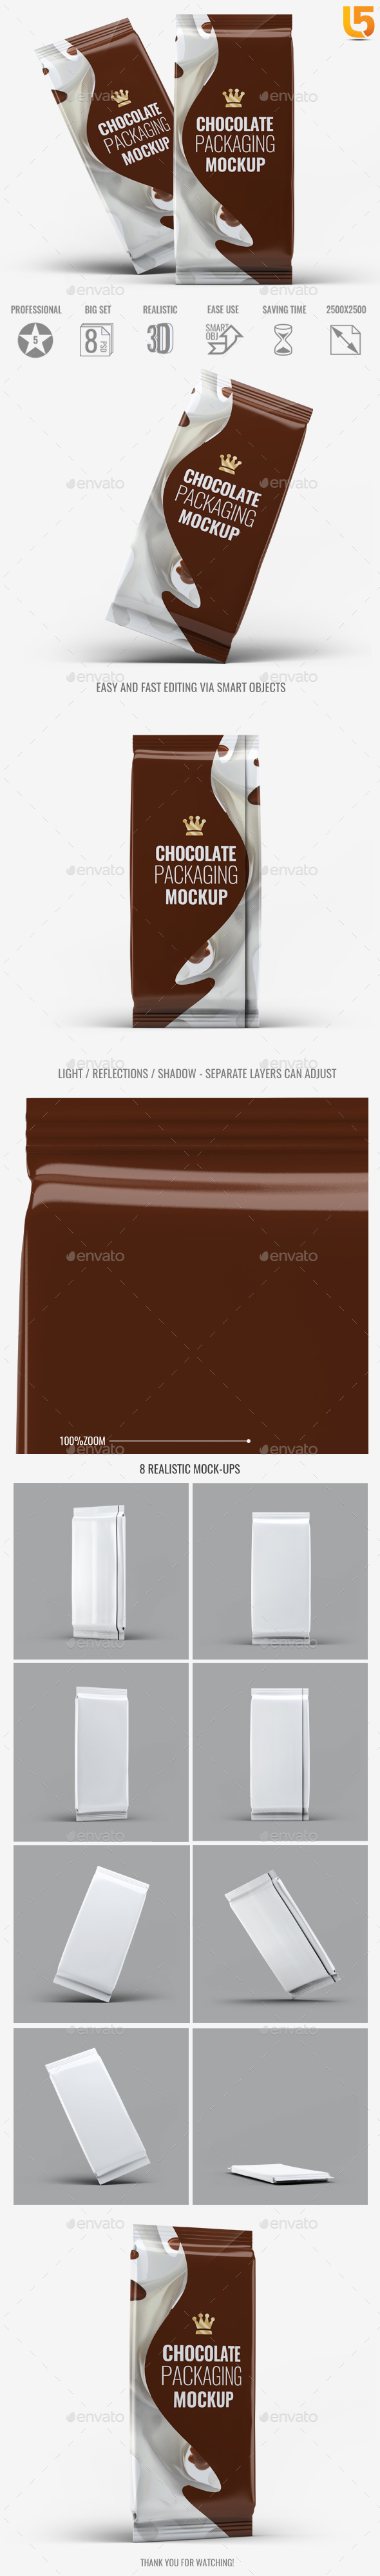 Chocolate Packaging Mock-Up - Food and Drink Packaging